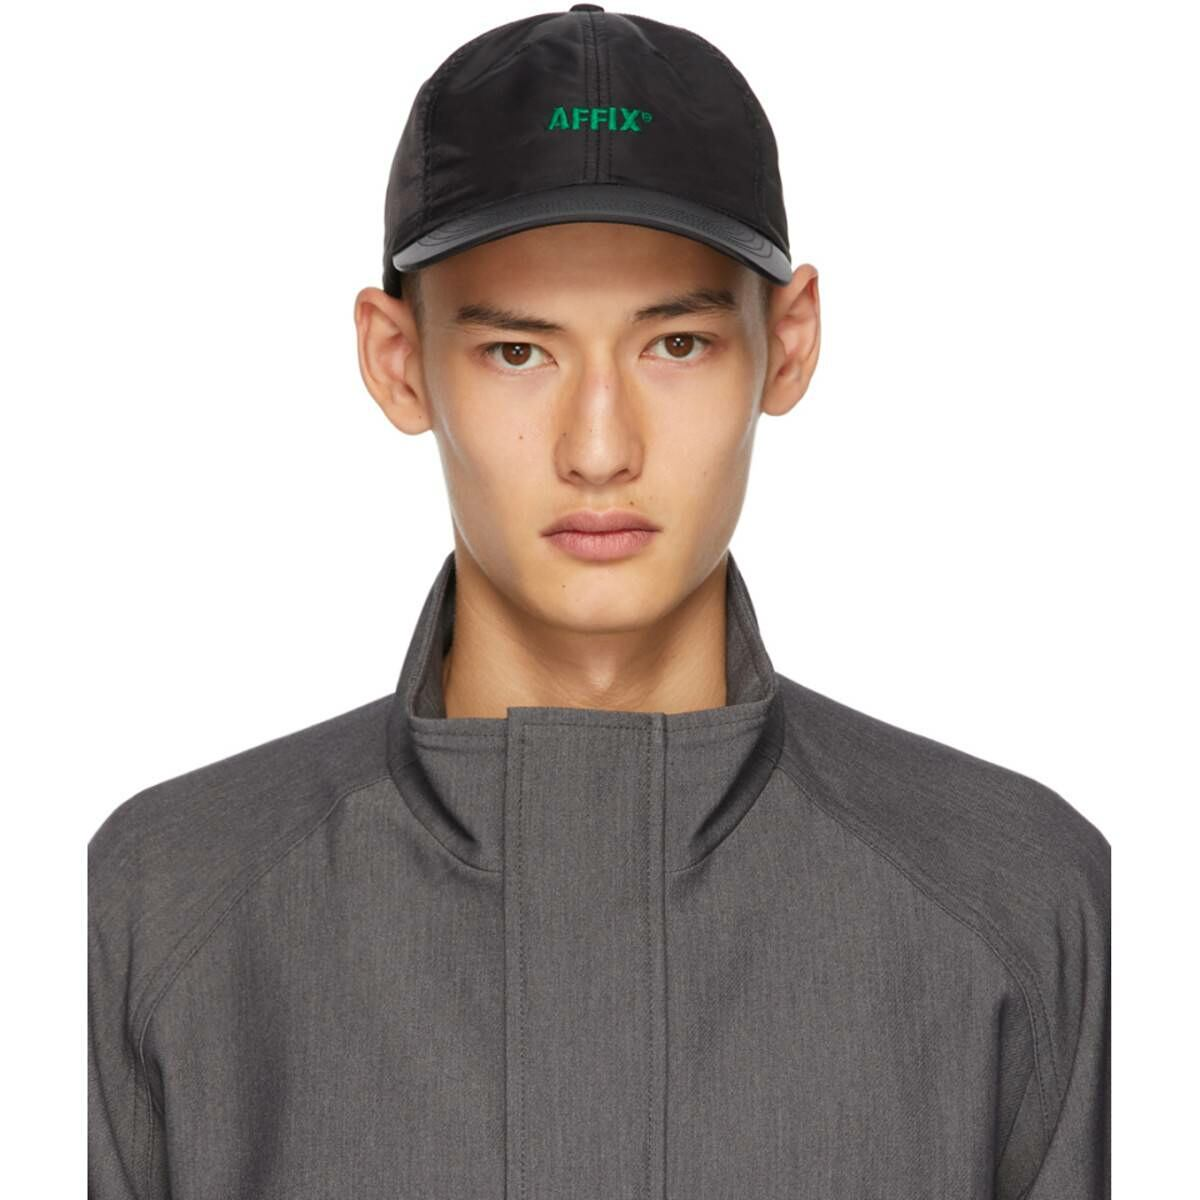 Affix Black Logo Cap Ssense USA MEN Men ACCESSORIES Mens CAPS